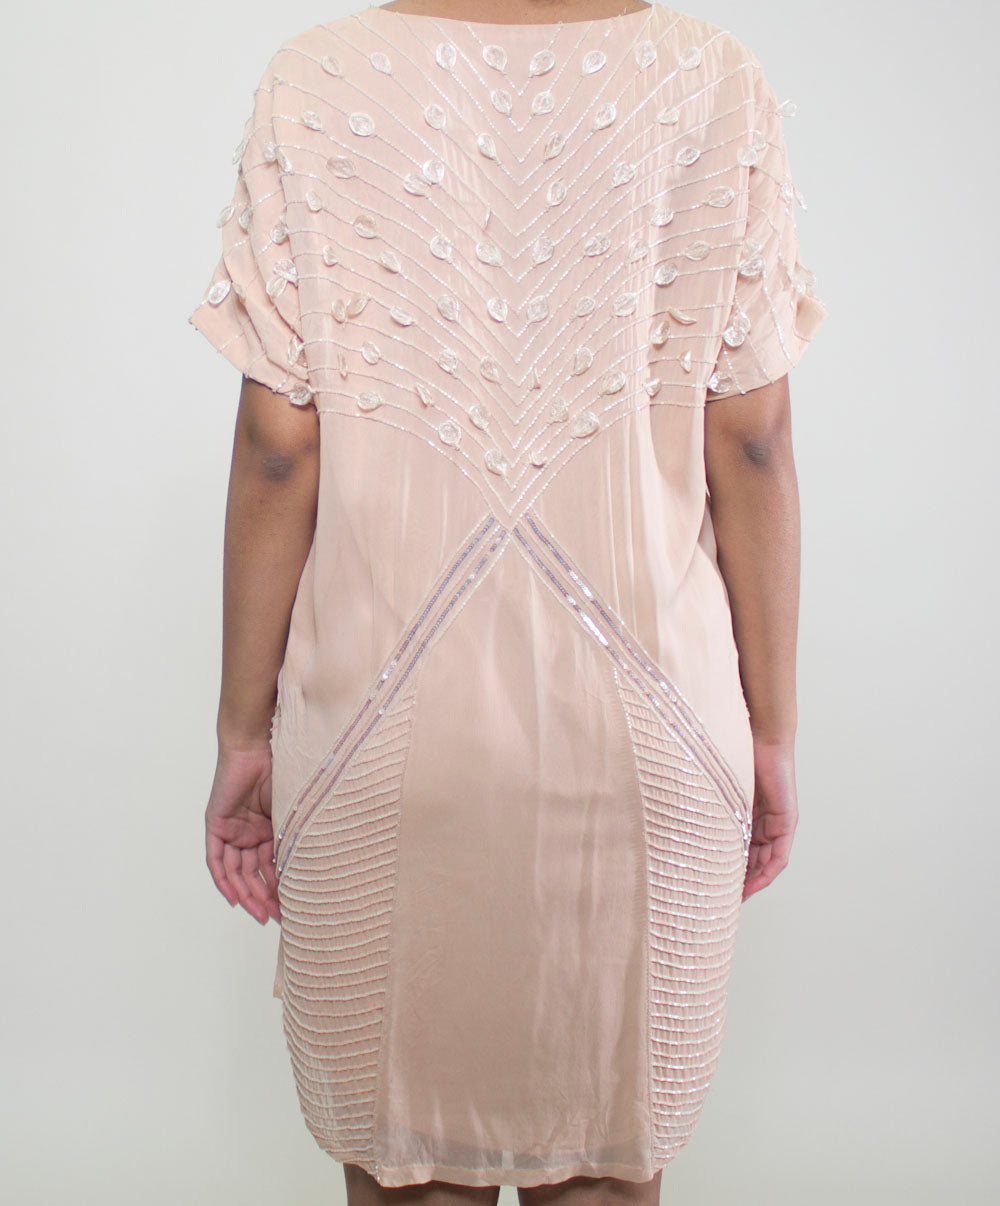 Blush Pink Beaded Dress